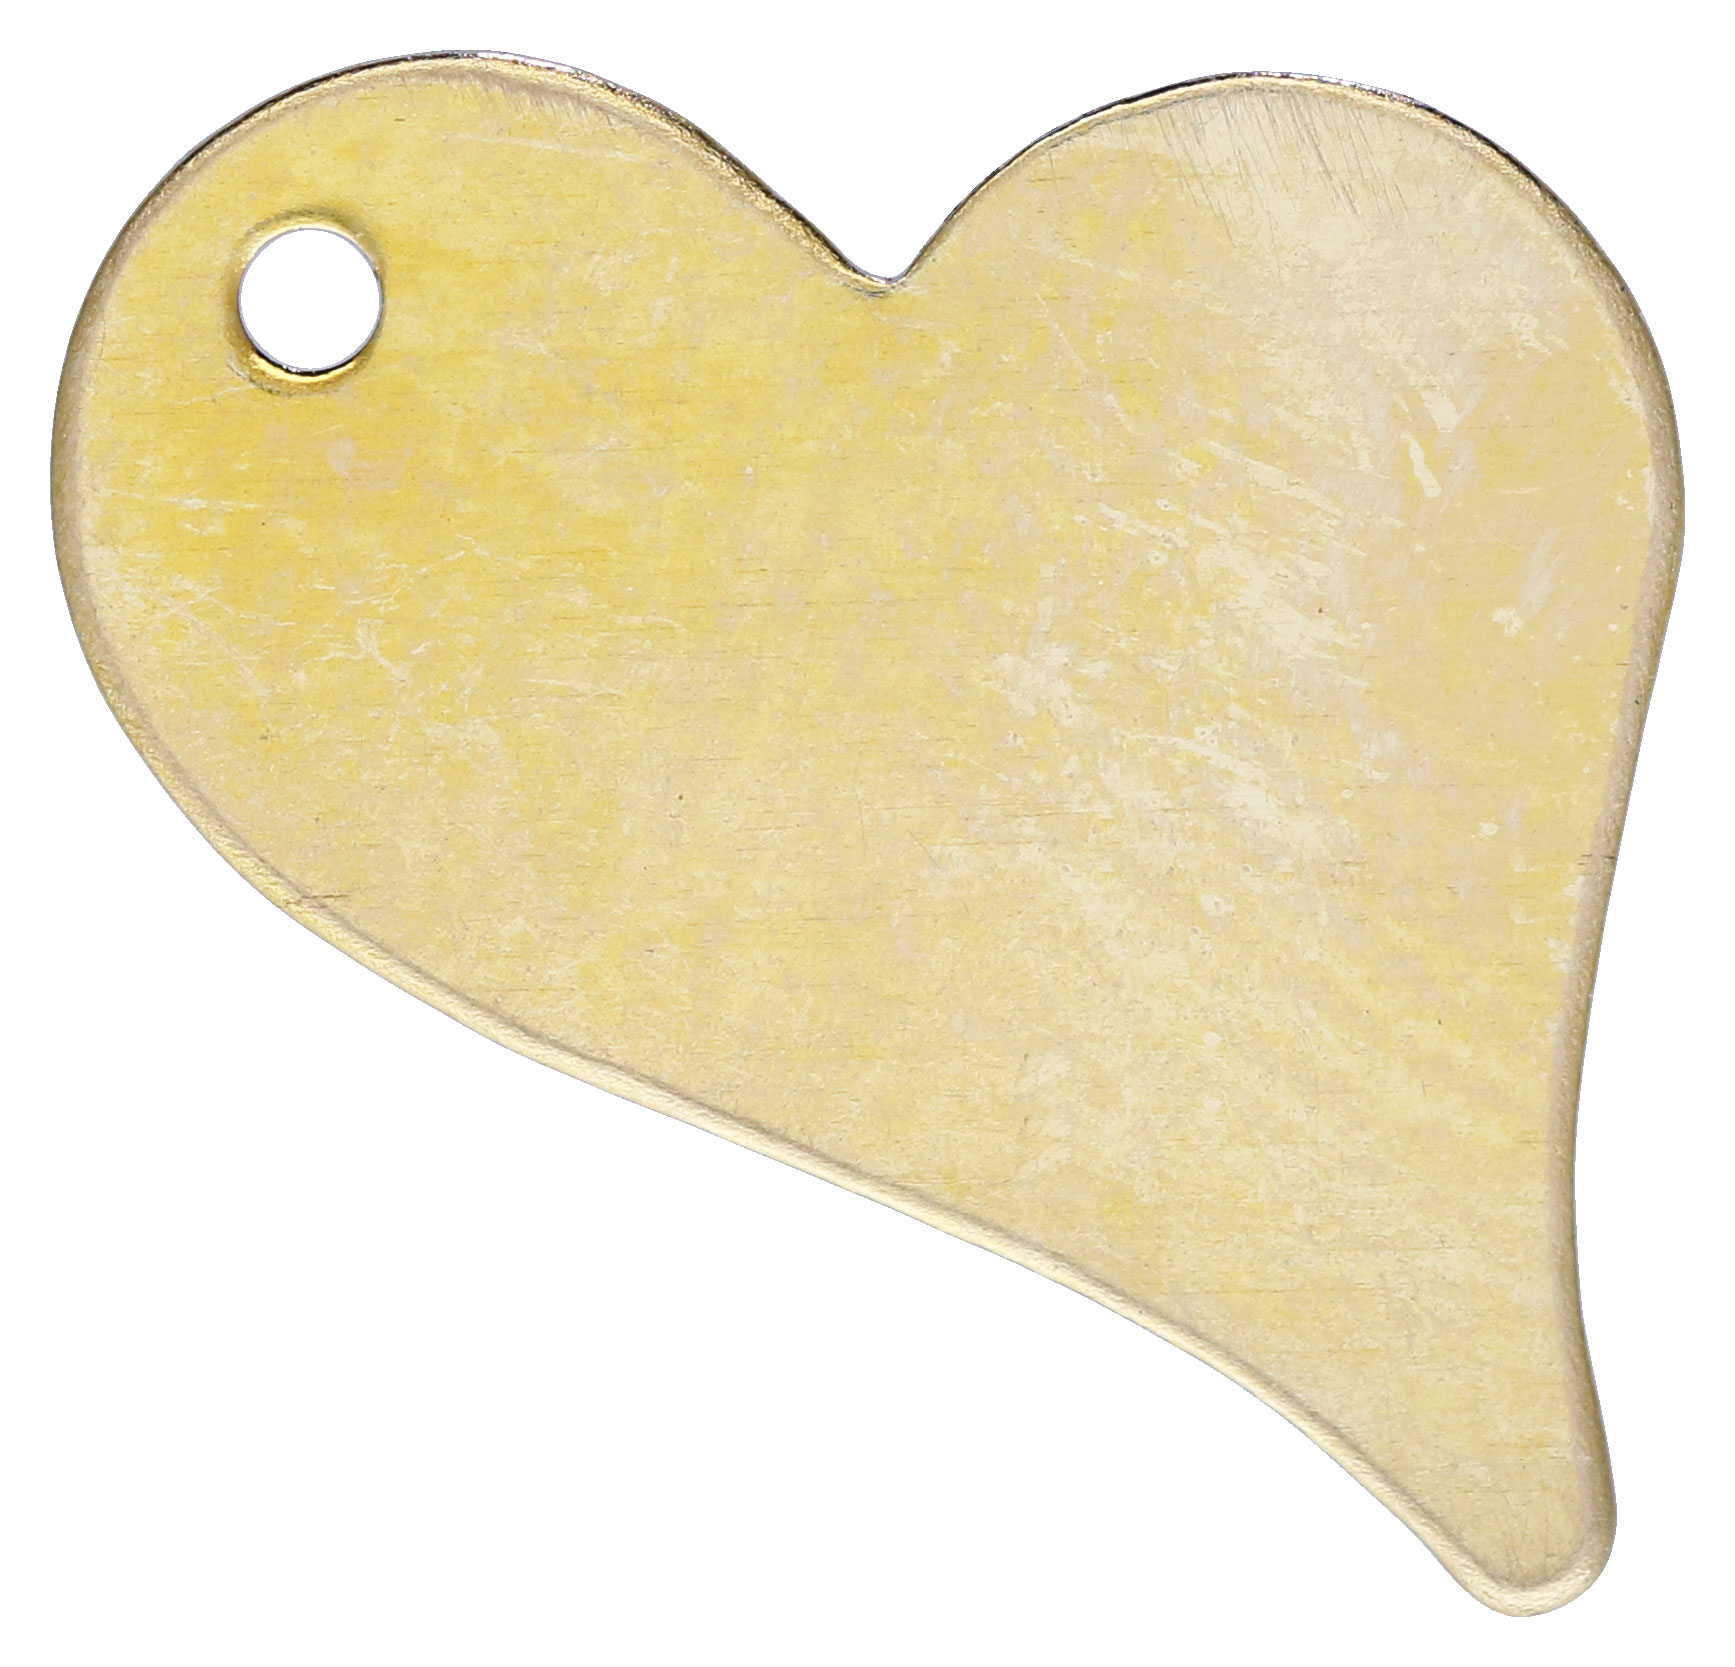 Gold Filled Heart Charm 11x17mm